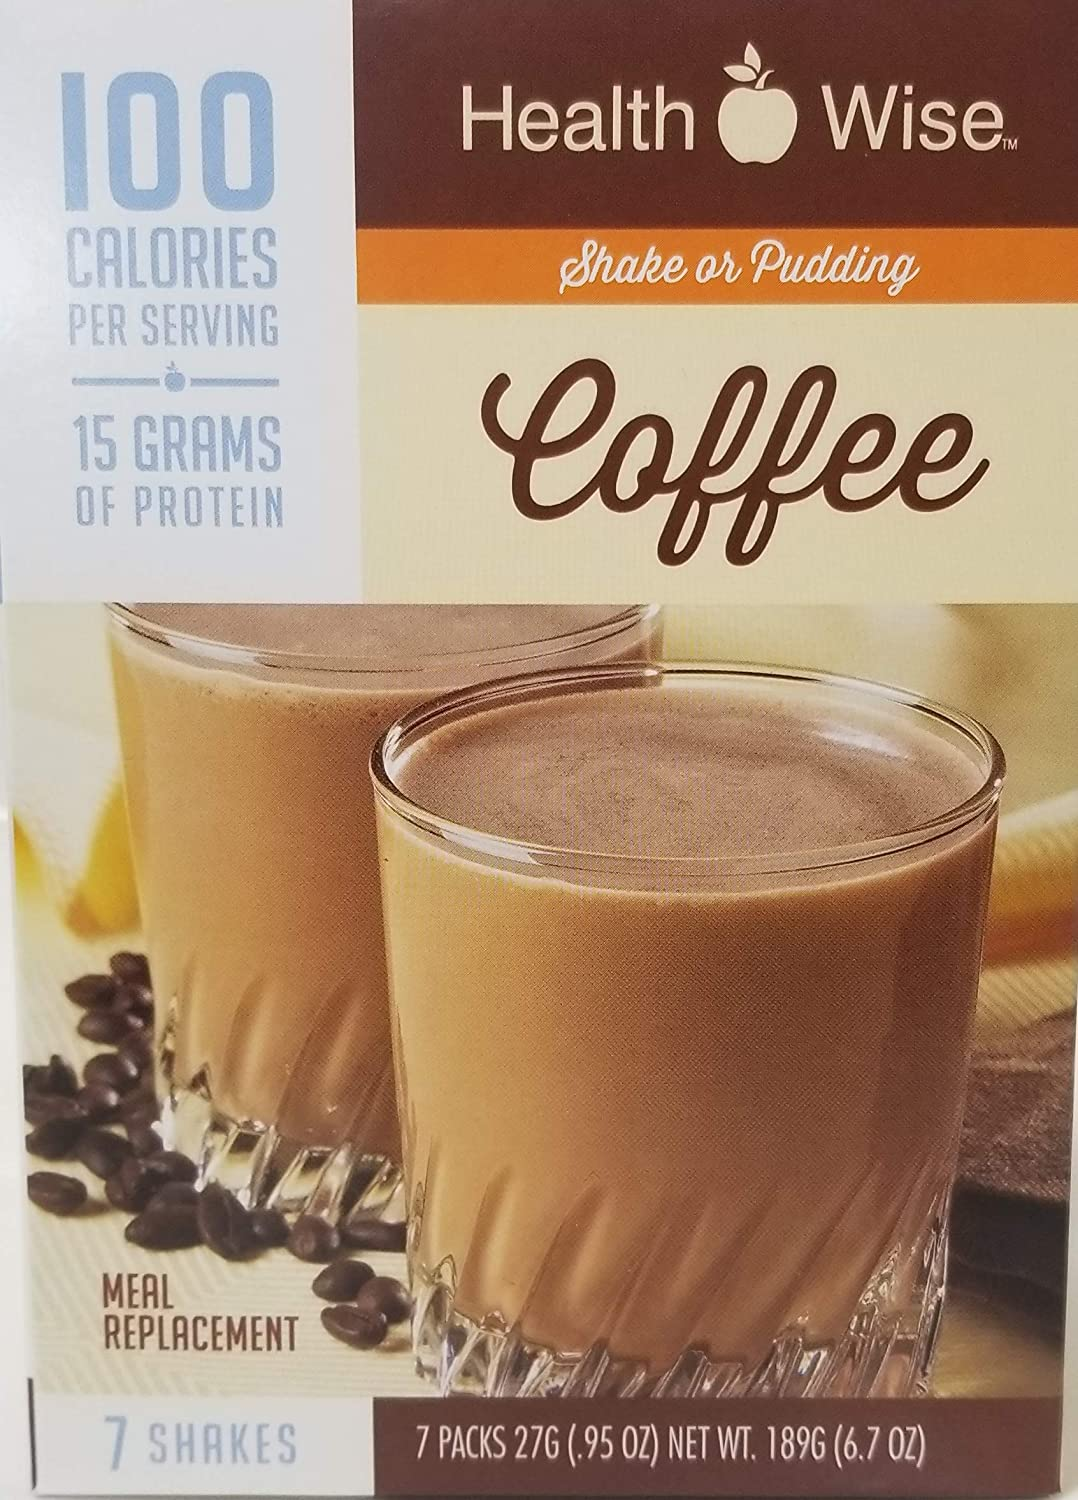 Healthwise - Coffee 100 Calorie Meal Replacement High Protein Pudding/Shake for Any Diet - 15 Grams of Protein - Zero Grams of Fat - Appetite Control for Weight Loss - 7 Packets 0.85 OZ